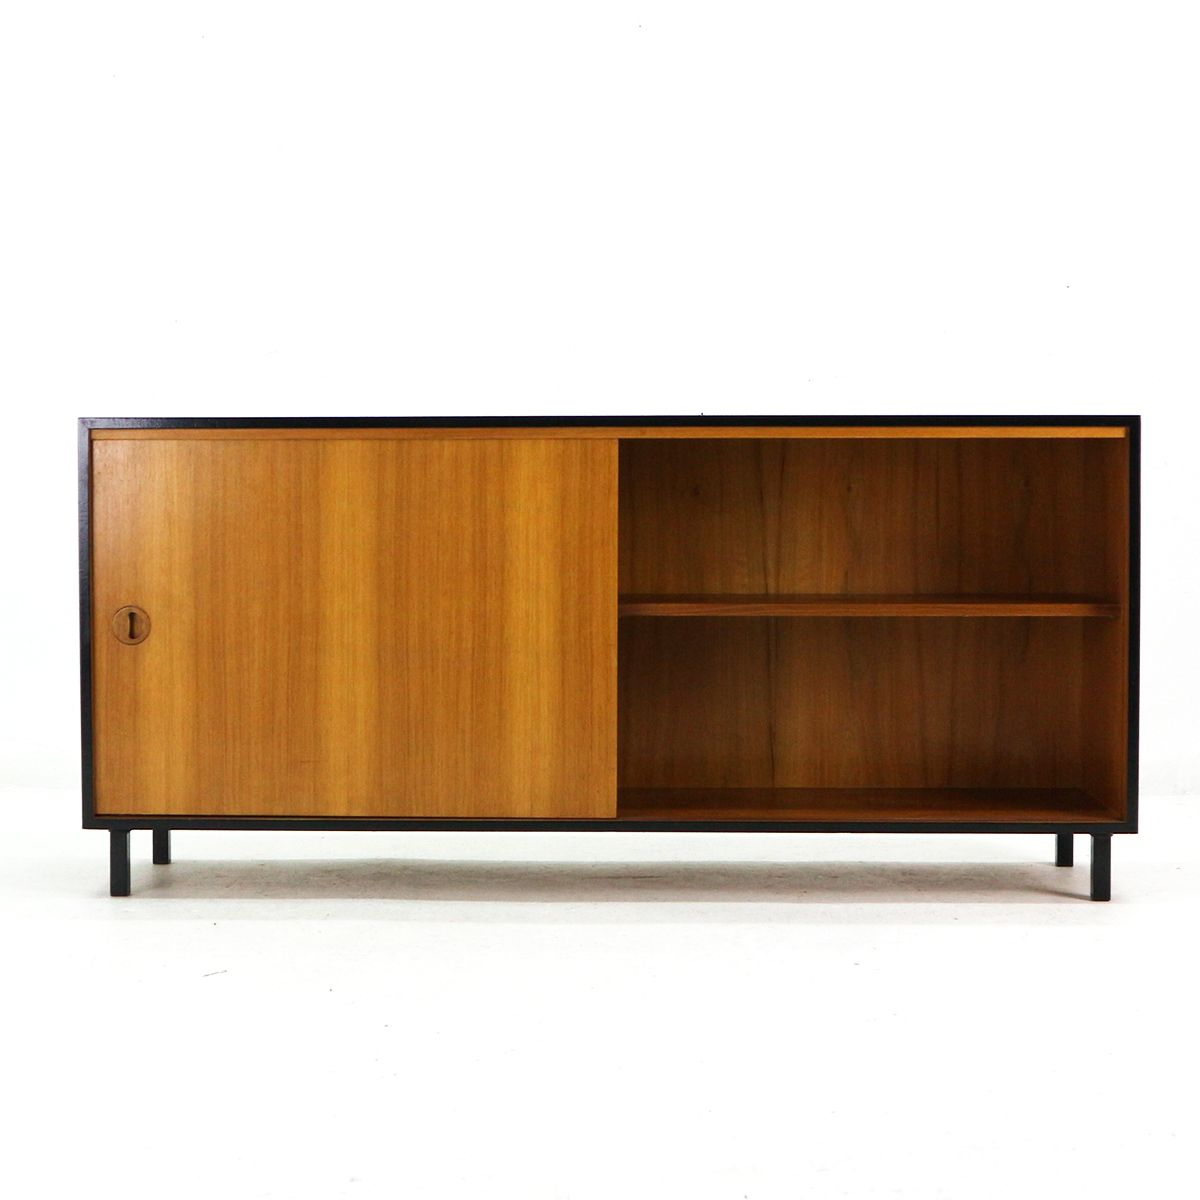 teak veneer sideboard from musterring 1960s for sale at pamono. Black Bedroom Furniture Sets. Home Design Ideas